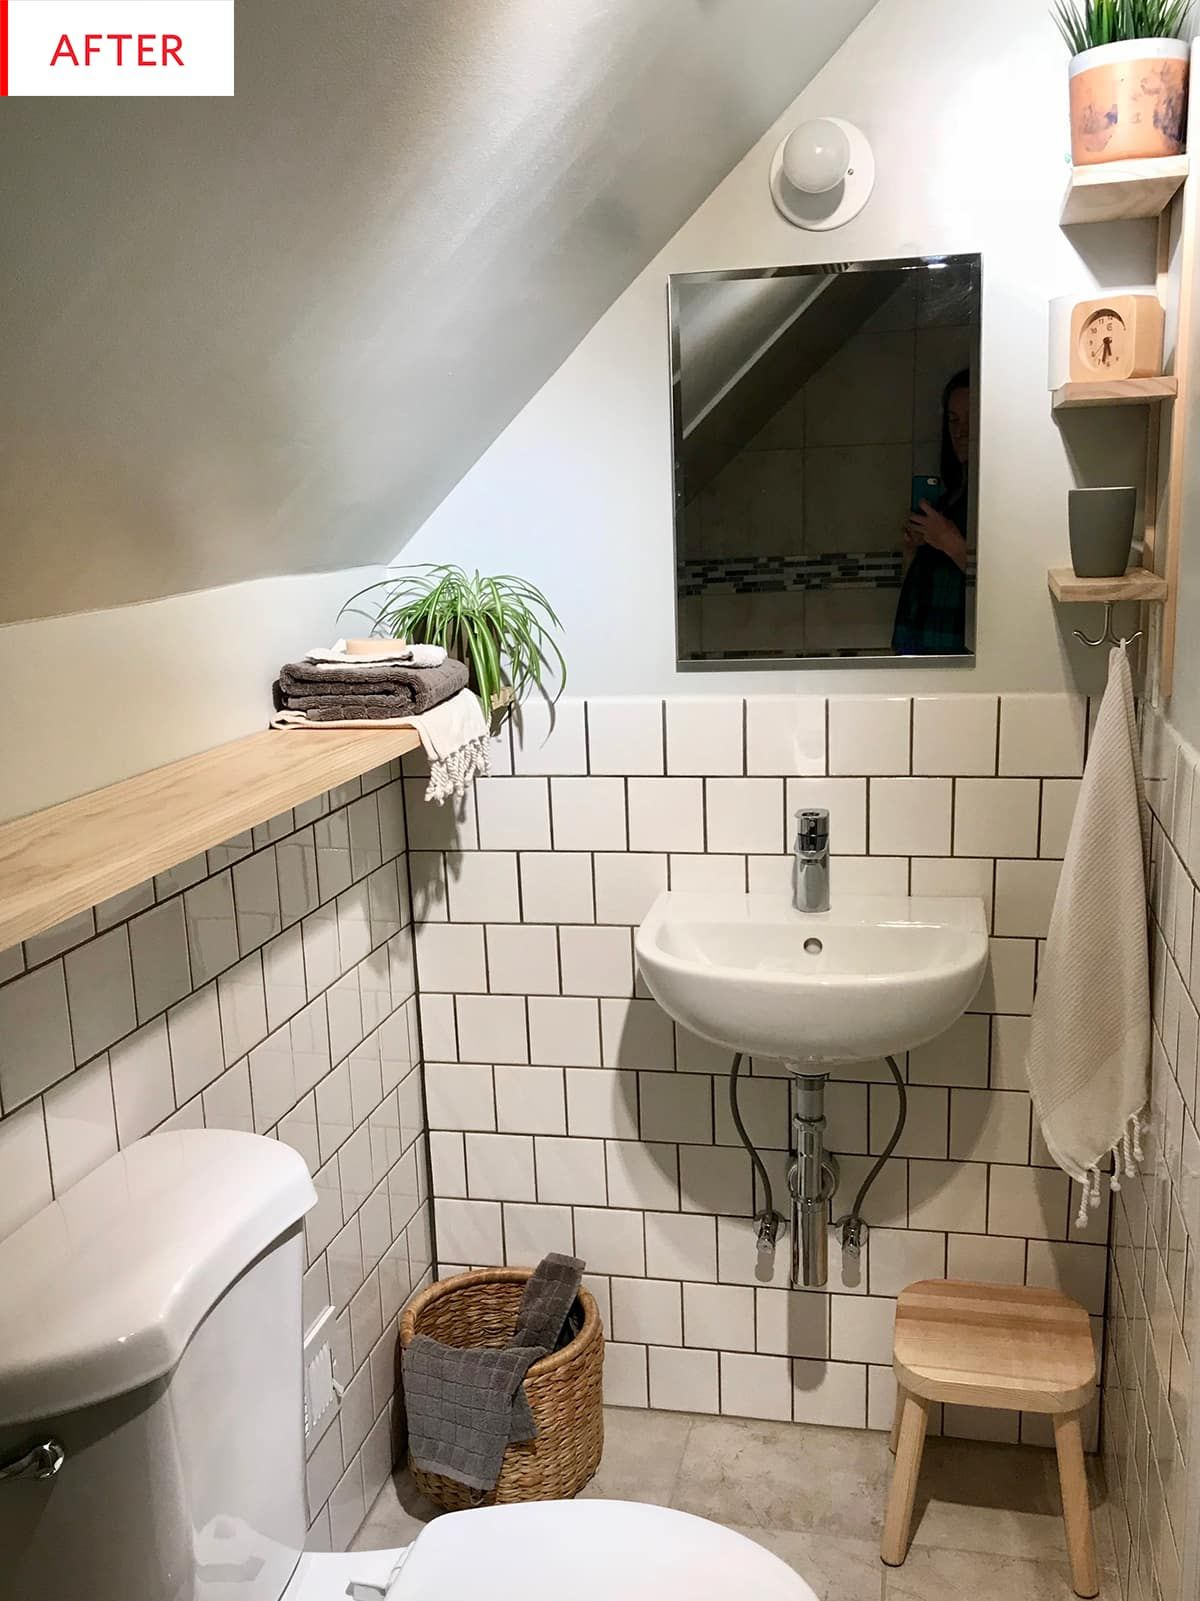 Before And After: This Tiny Bathroom Looks Brand New After Only